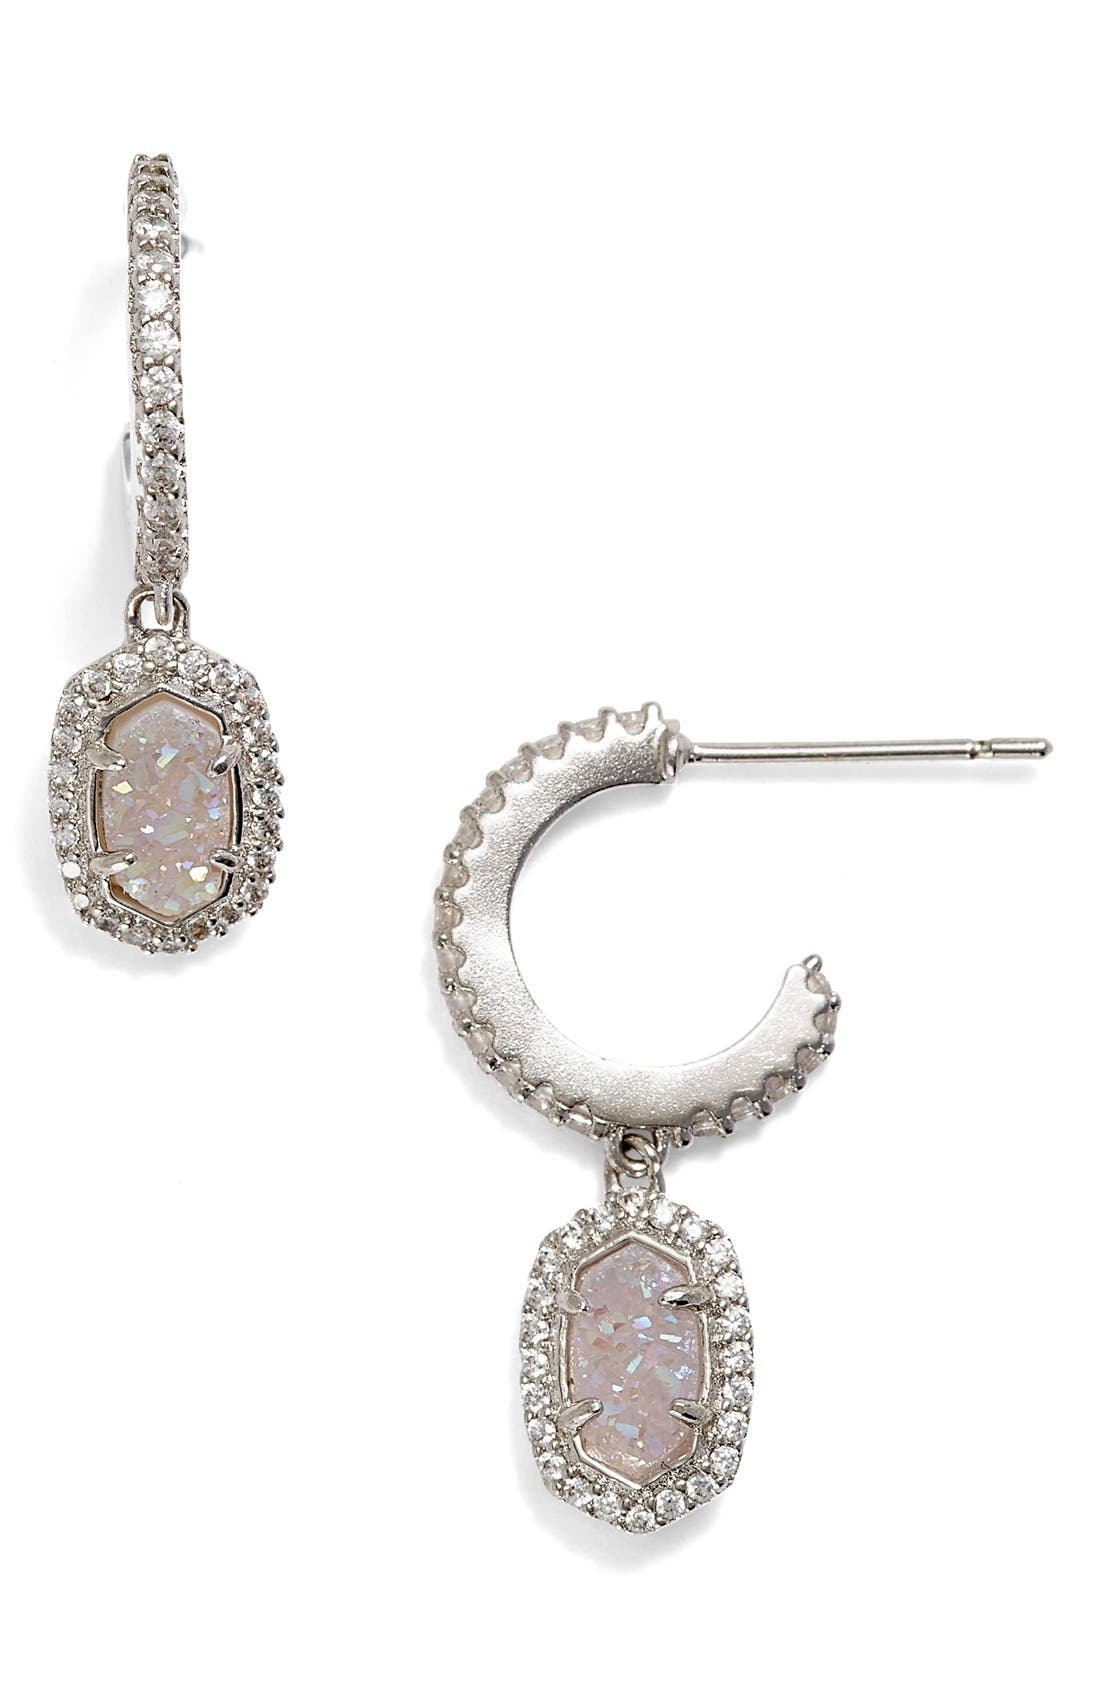 'Cale' Hoop Earrings,                             Main thumbnail 1, color,                             Silver Iridescent Drusy